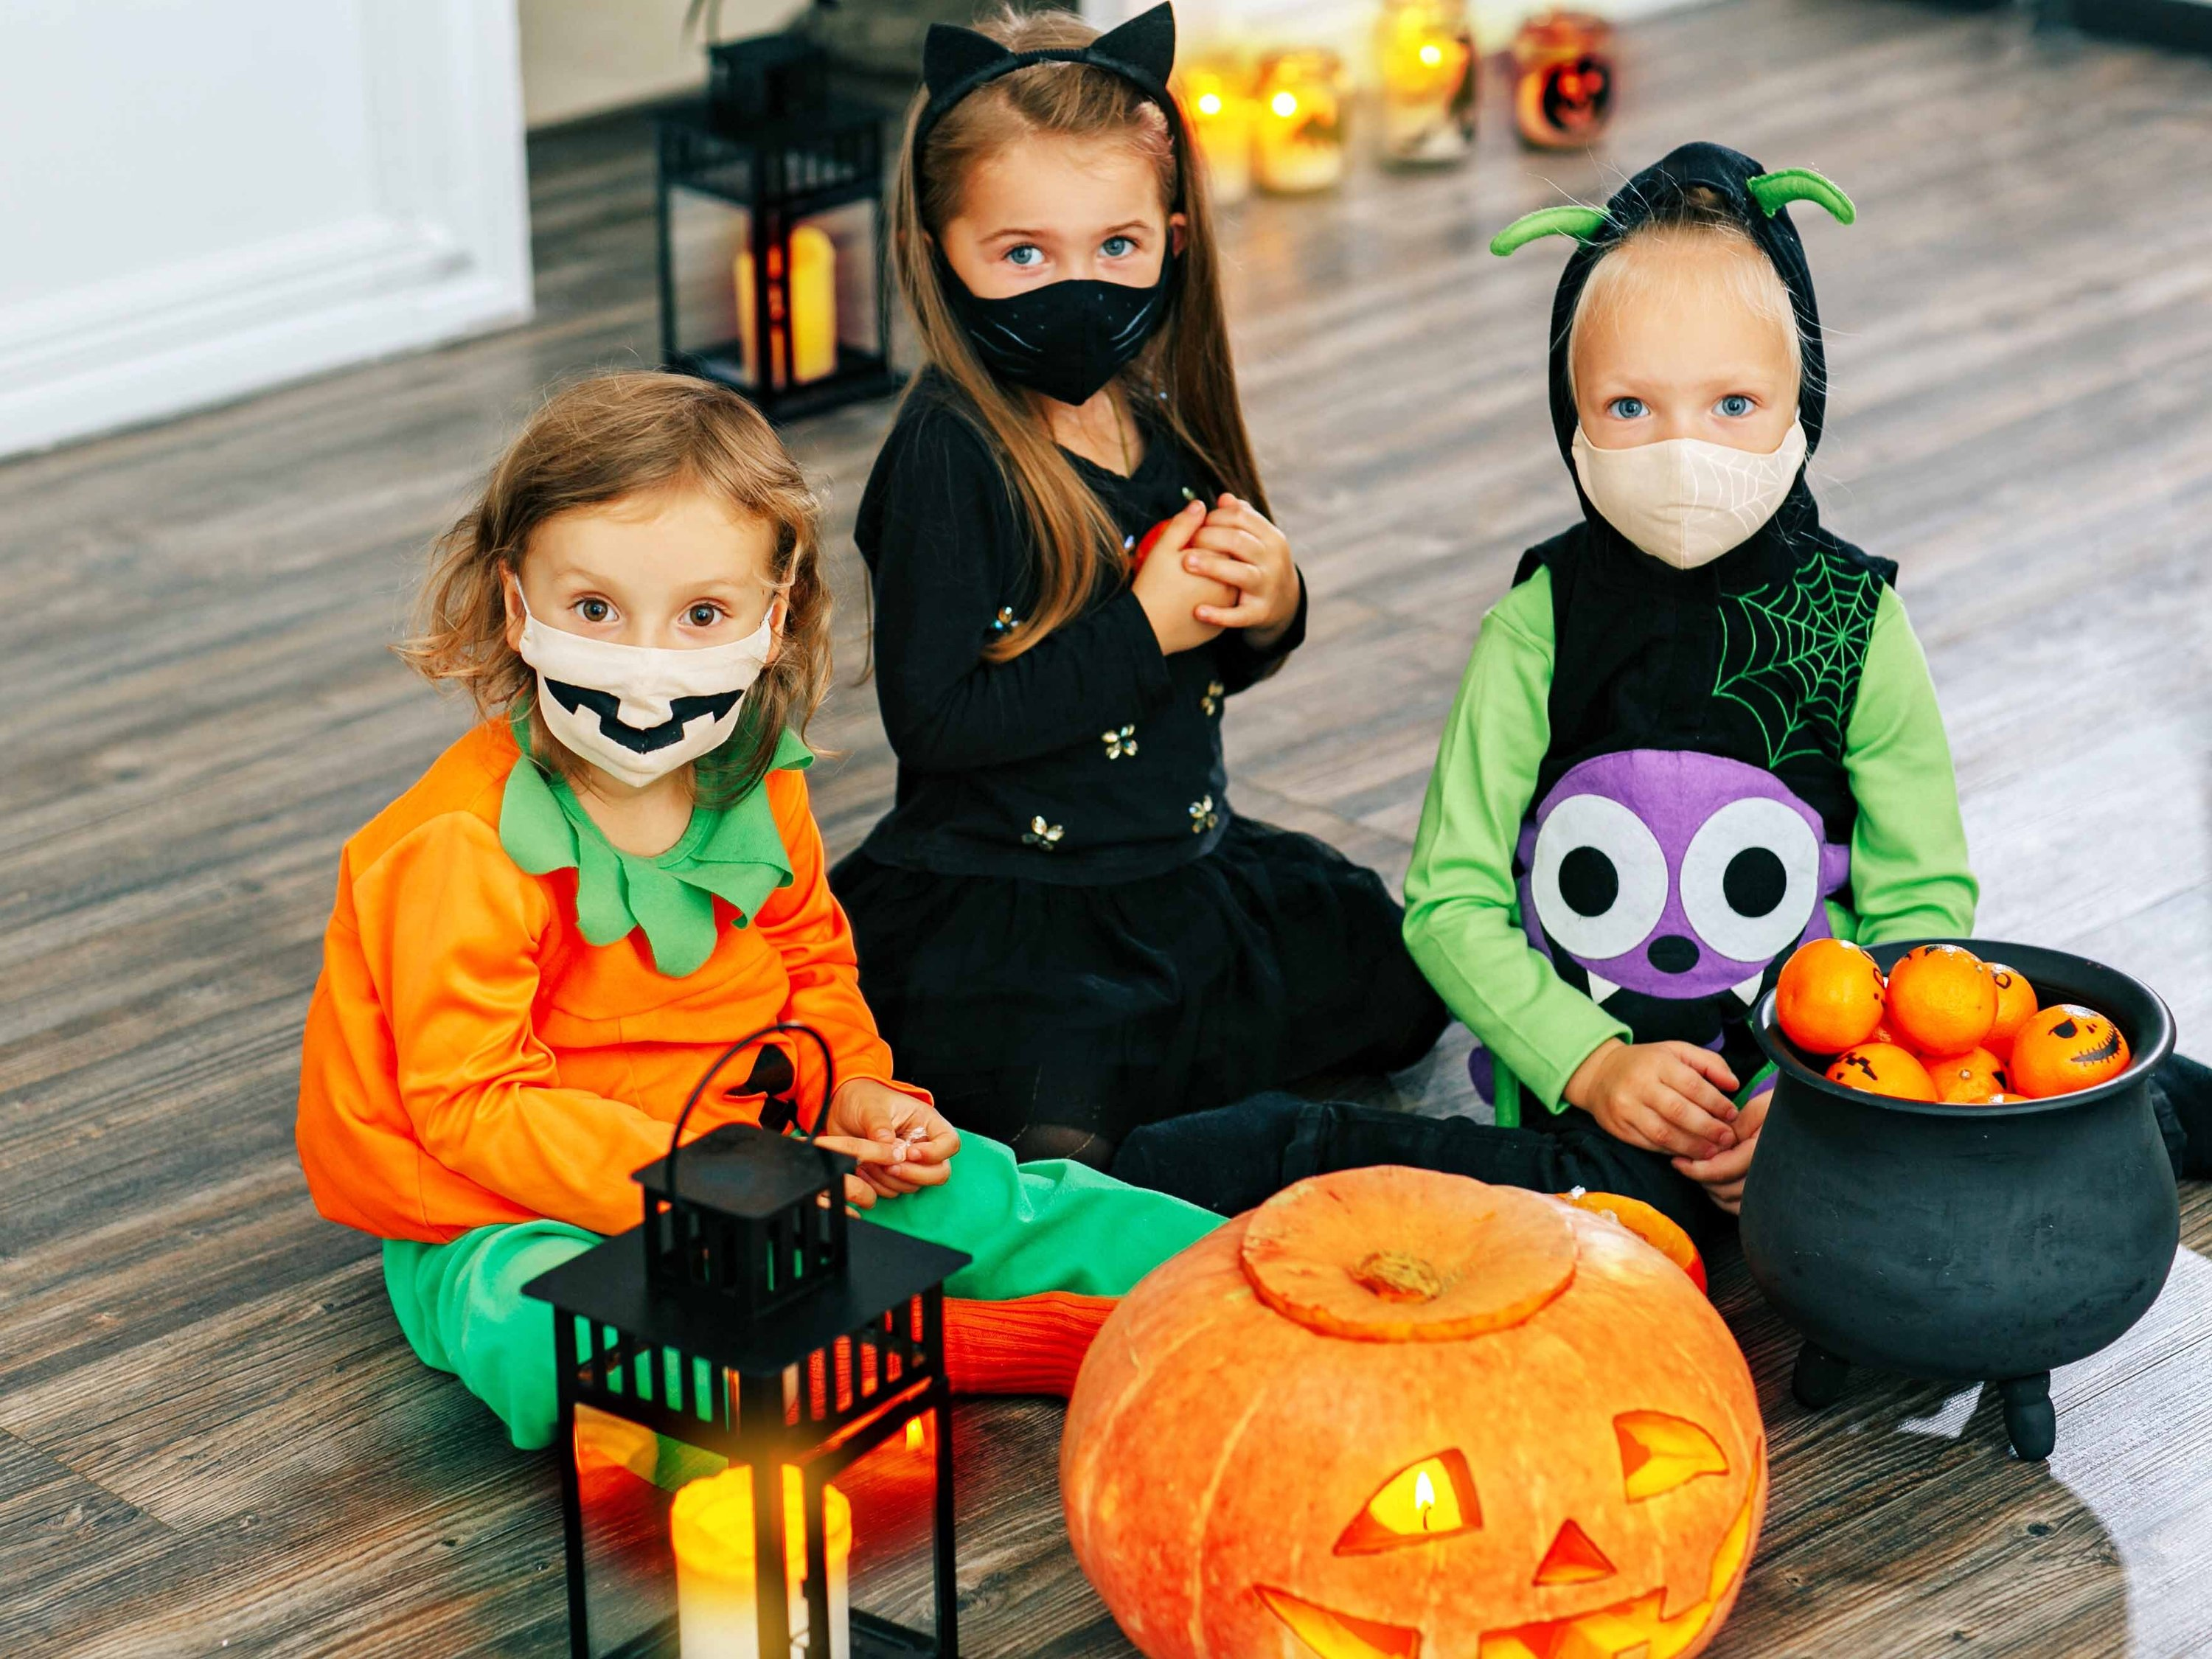 What will Halloween look like this year?